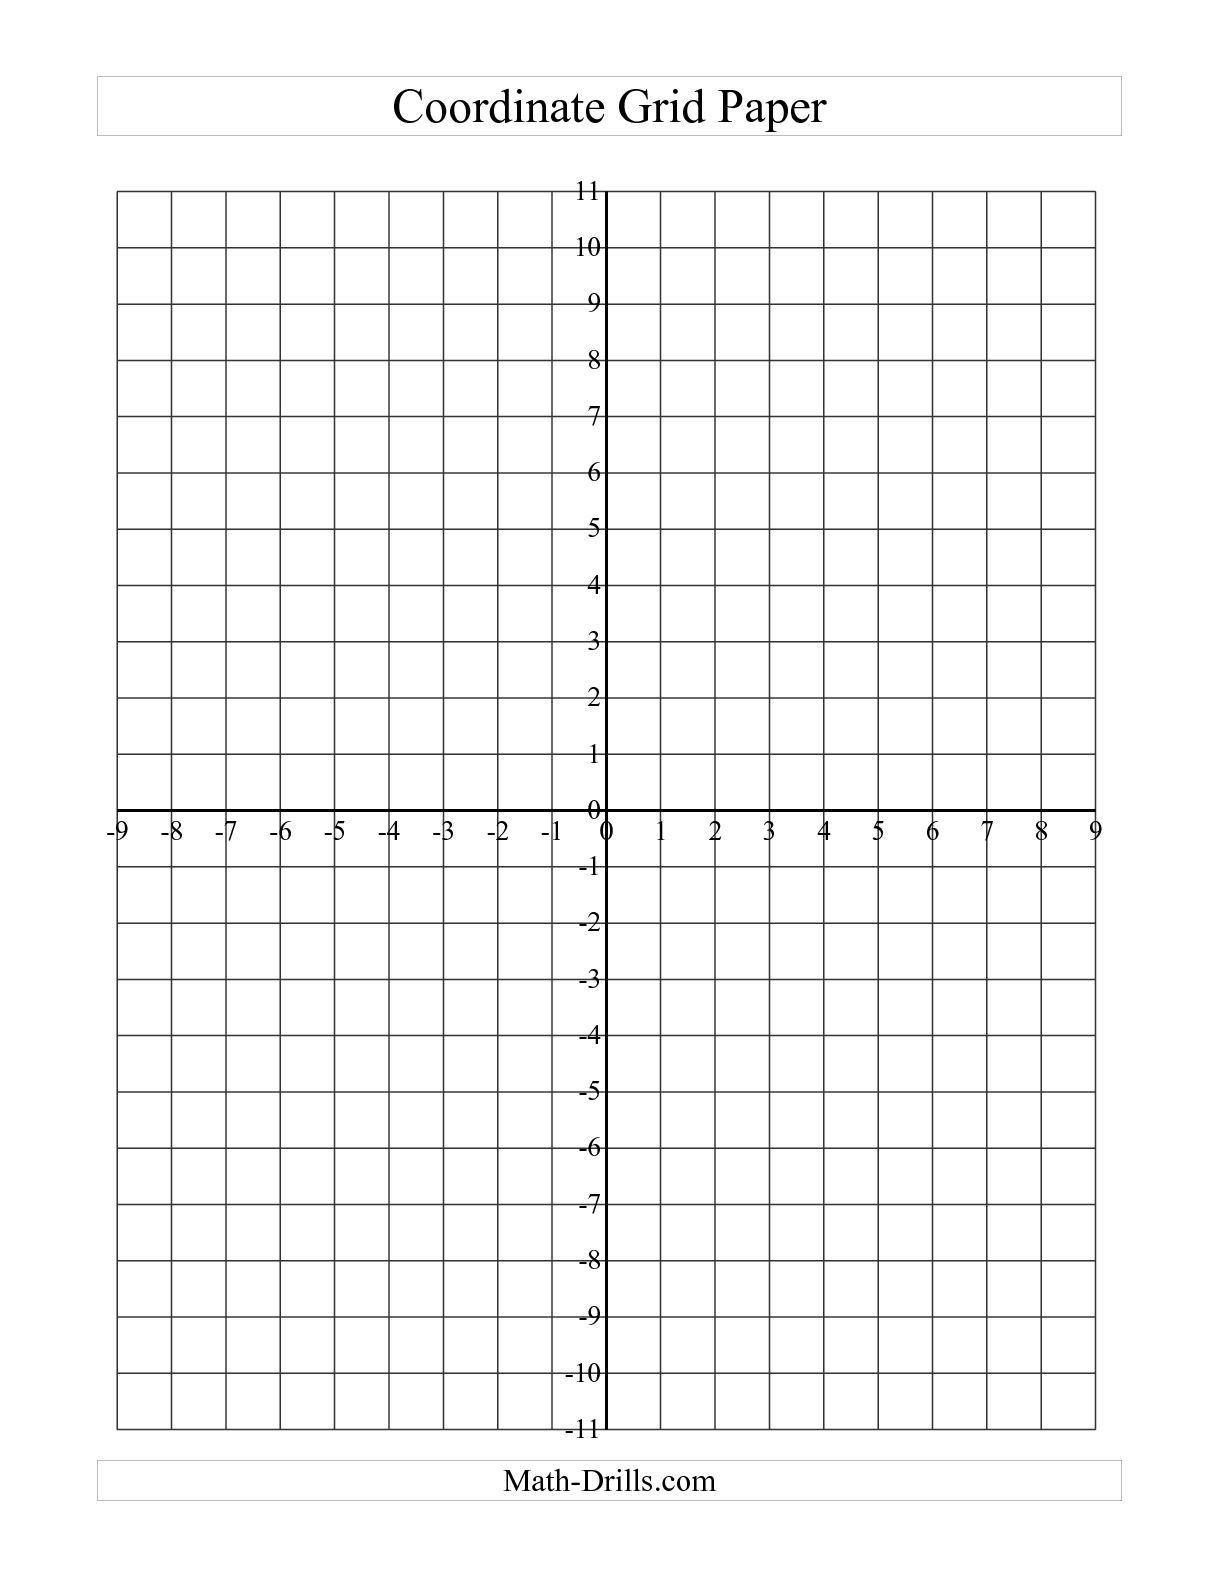 Ordered Pairs Worksheet 5th Grade Coordinate Grid Worksheets with Answers